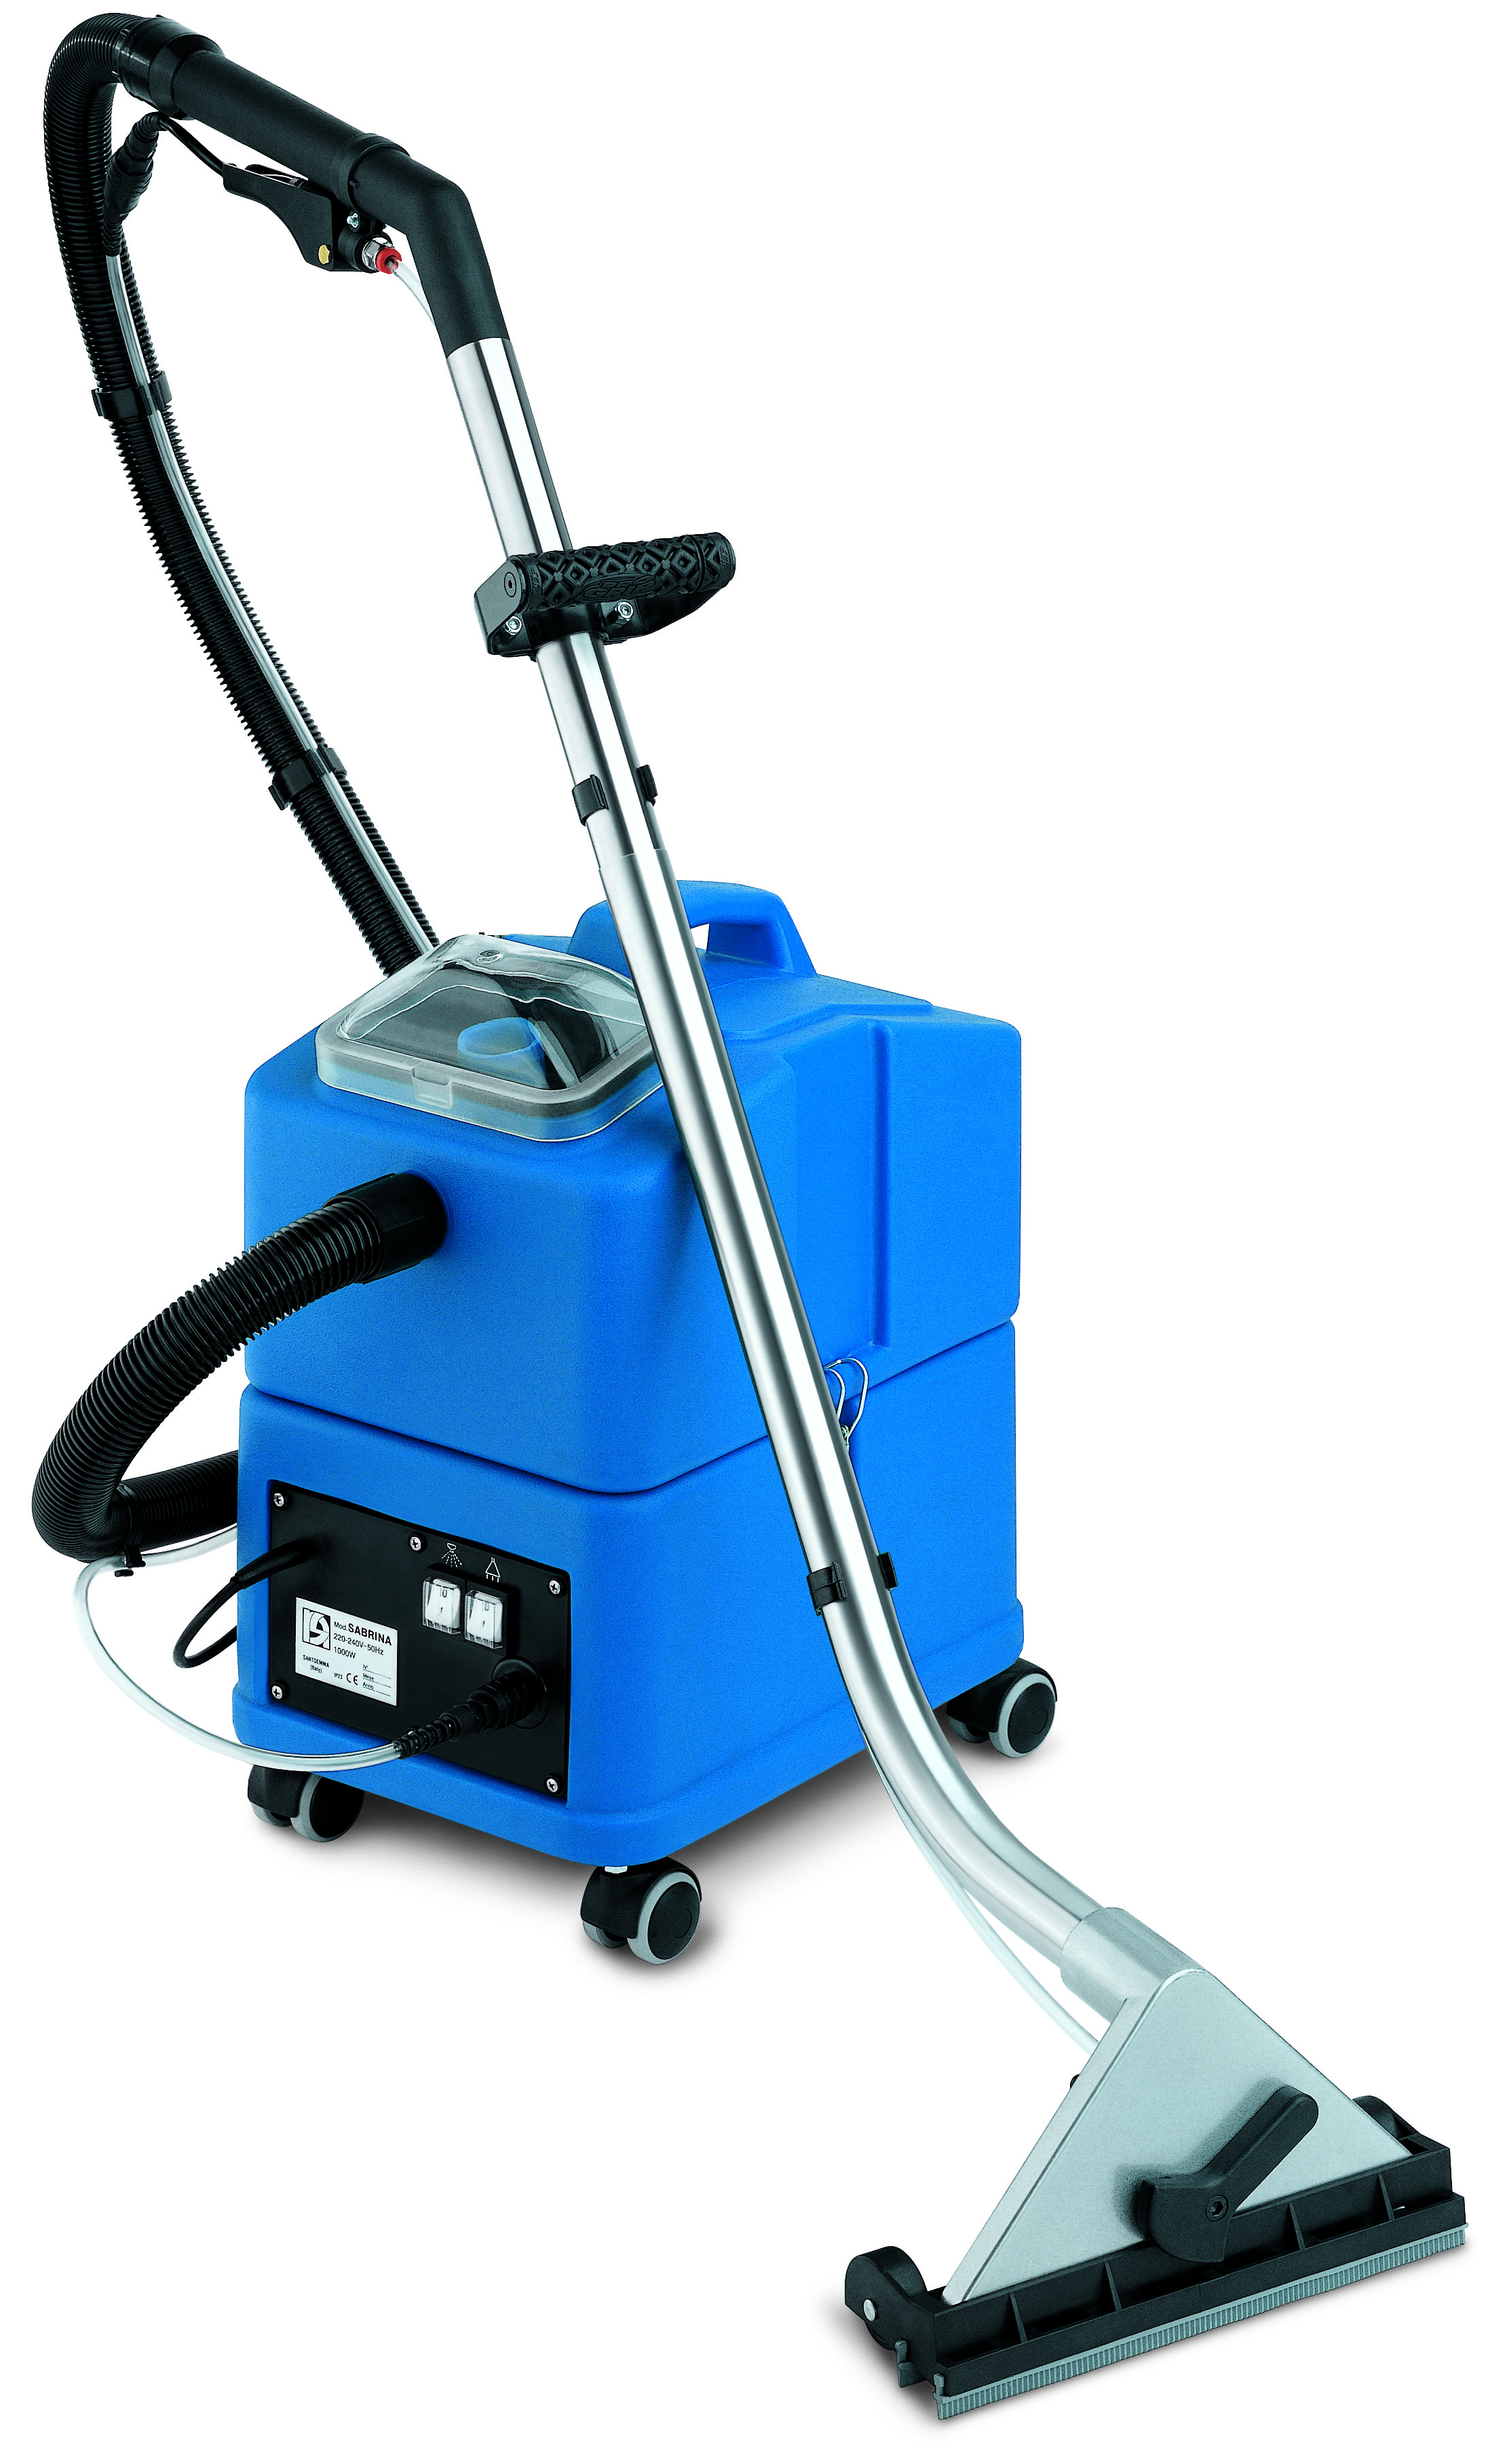 equipment janitorial repair pm programs program cleaning machines services maintenance planned floor